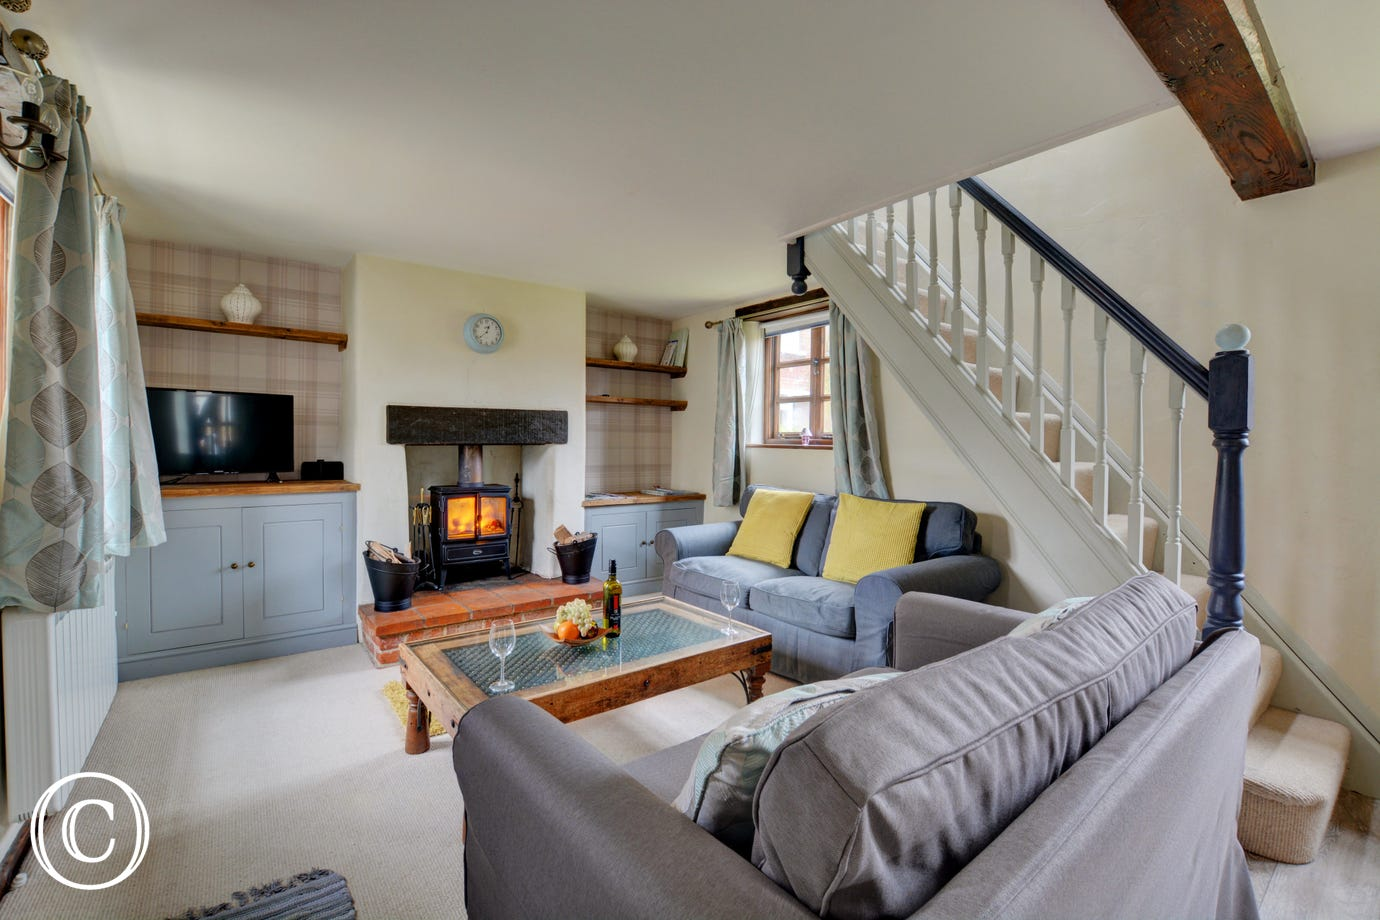 Cosy Sitting Room with comfortable seating and wood burner - perfect to warm your toes on a chilly day